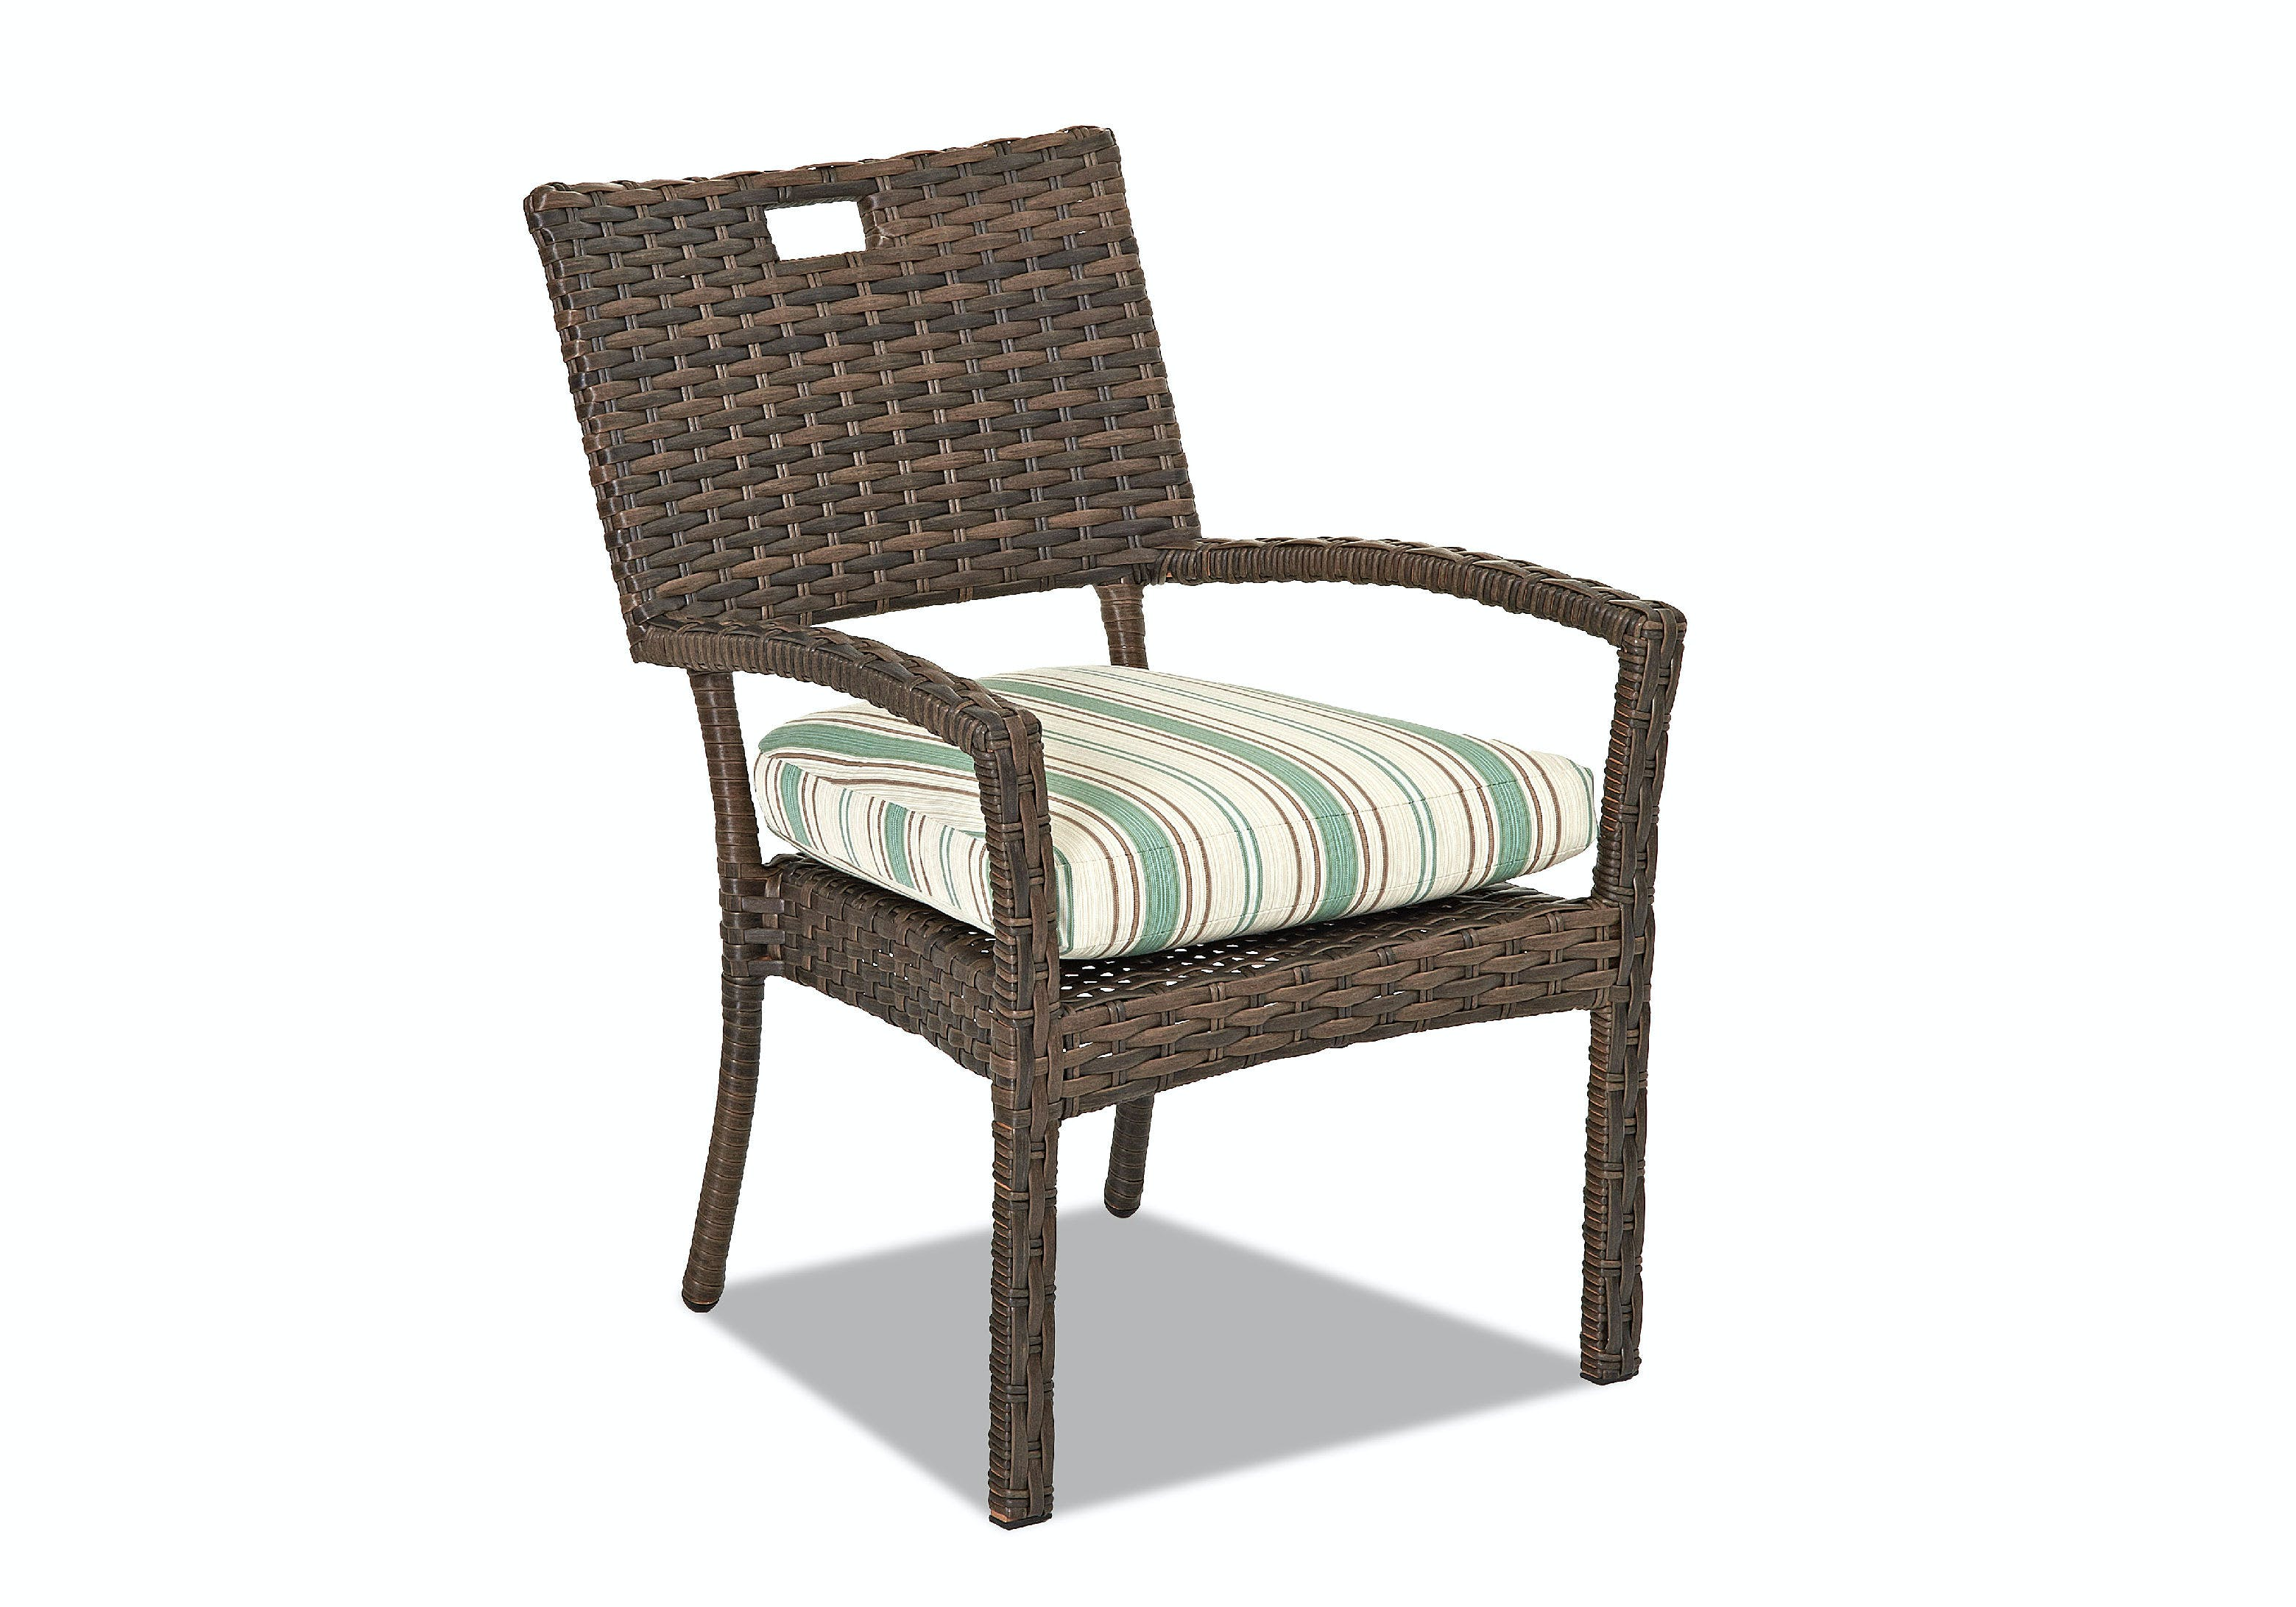 Klaussner Outdoor Outdoorpatio Sycamore Stackable Dining Chair Cekw5100stdc Walter E Smithe Furniture Design